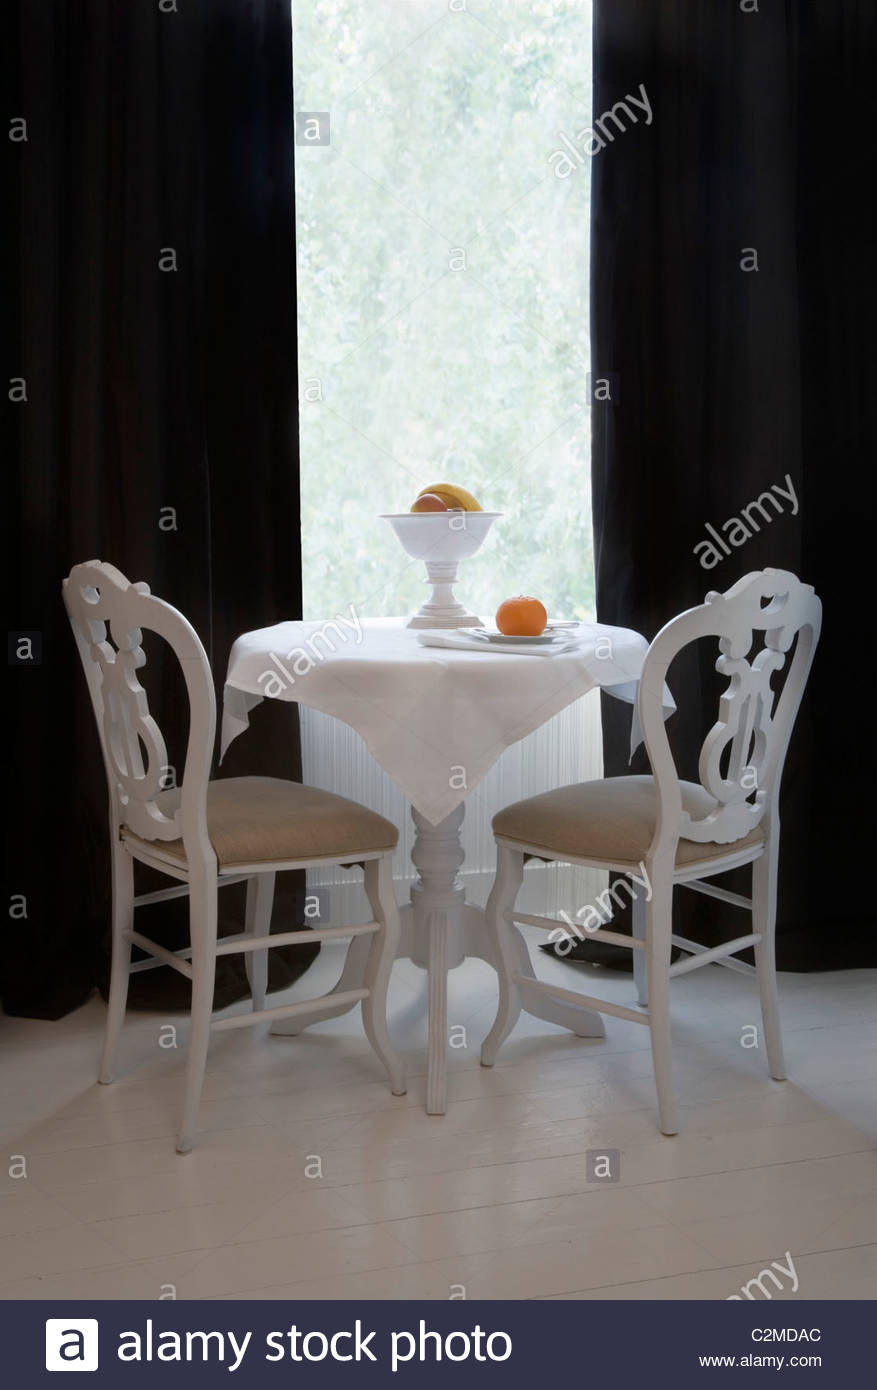 Small Round White Table With Fruitbowl And Two Chairs In